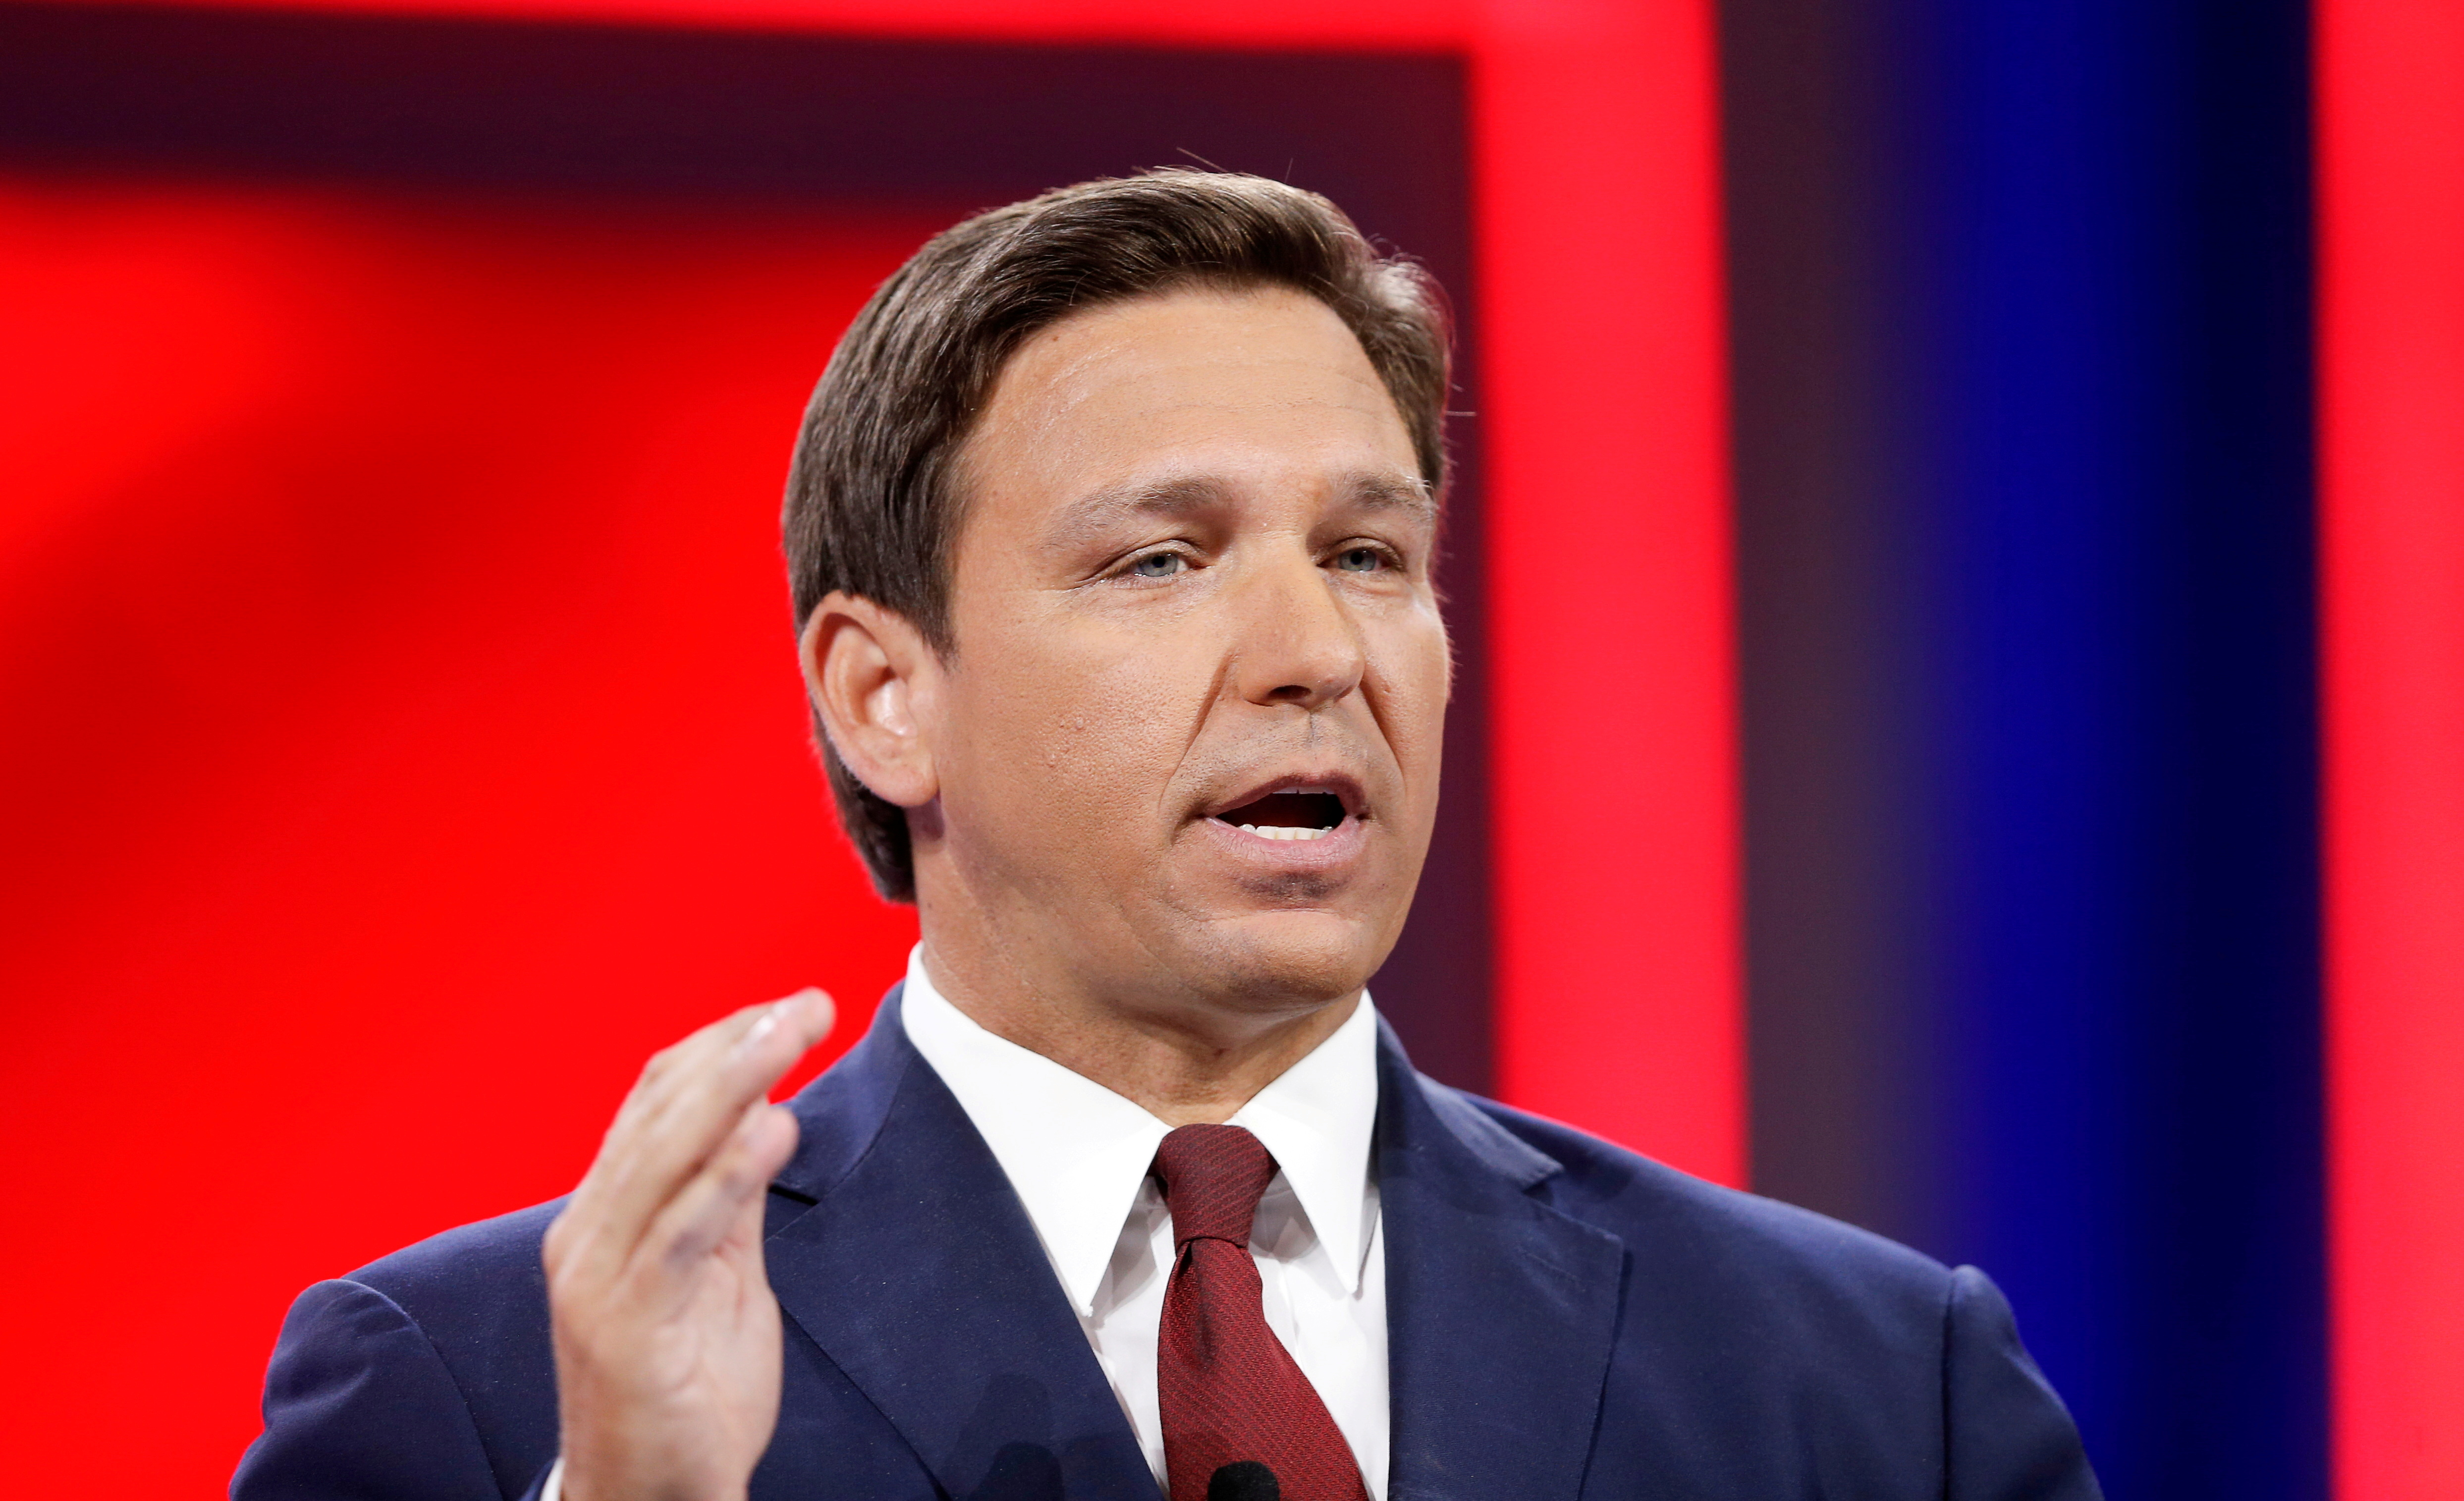 Florida Gov. Ron DeSantis speaks during the welcome segment of the Conservative Political Action Conference (CPAC) in Orlando, Florida, U.S. February 26, 2021. REUTERS/Joe Skipper/File Photo/File Photo